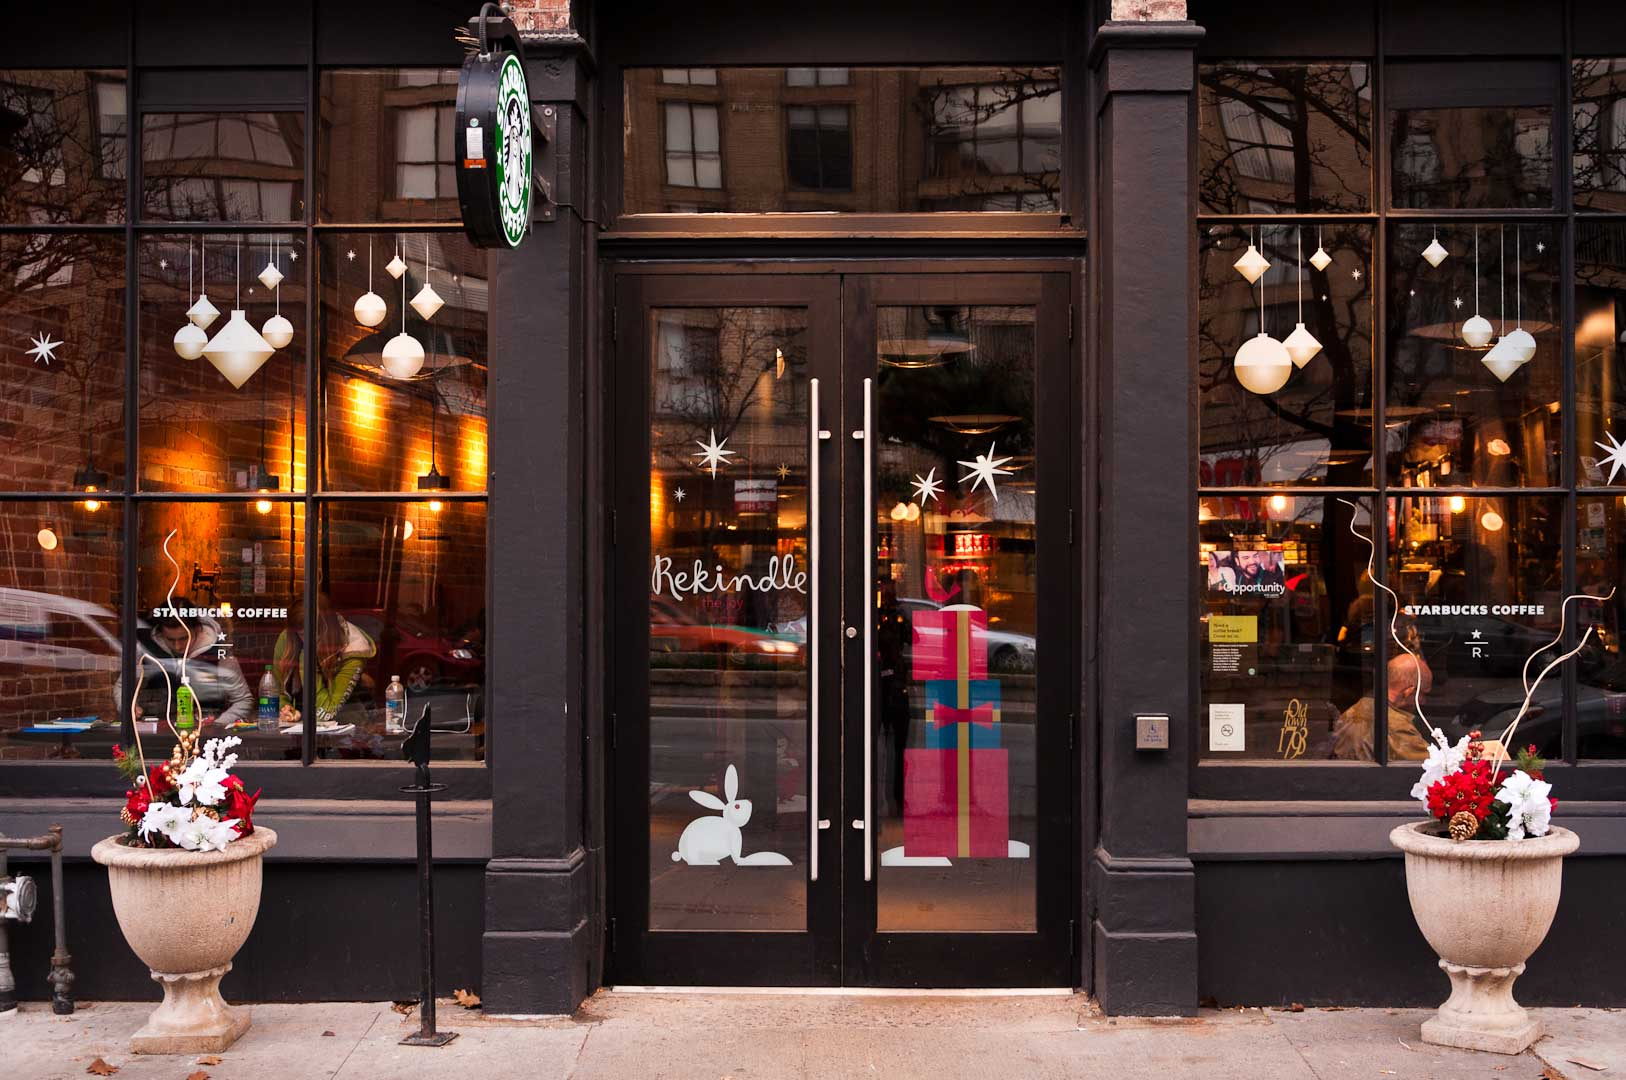 Starbucks Storefront With Automatic Door Opener by Explore1.ca Toronto